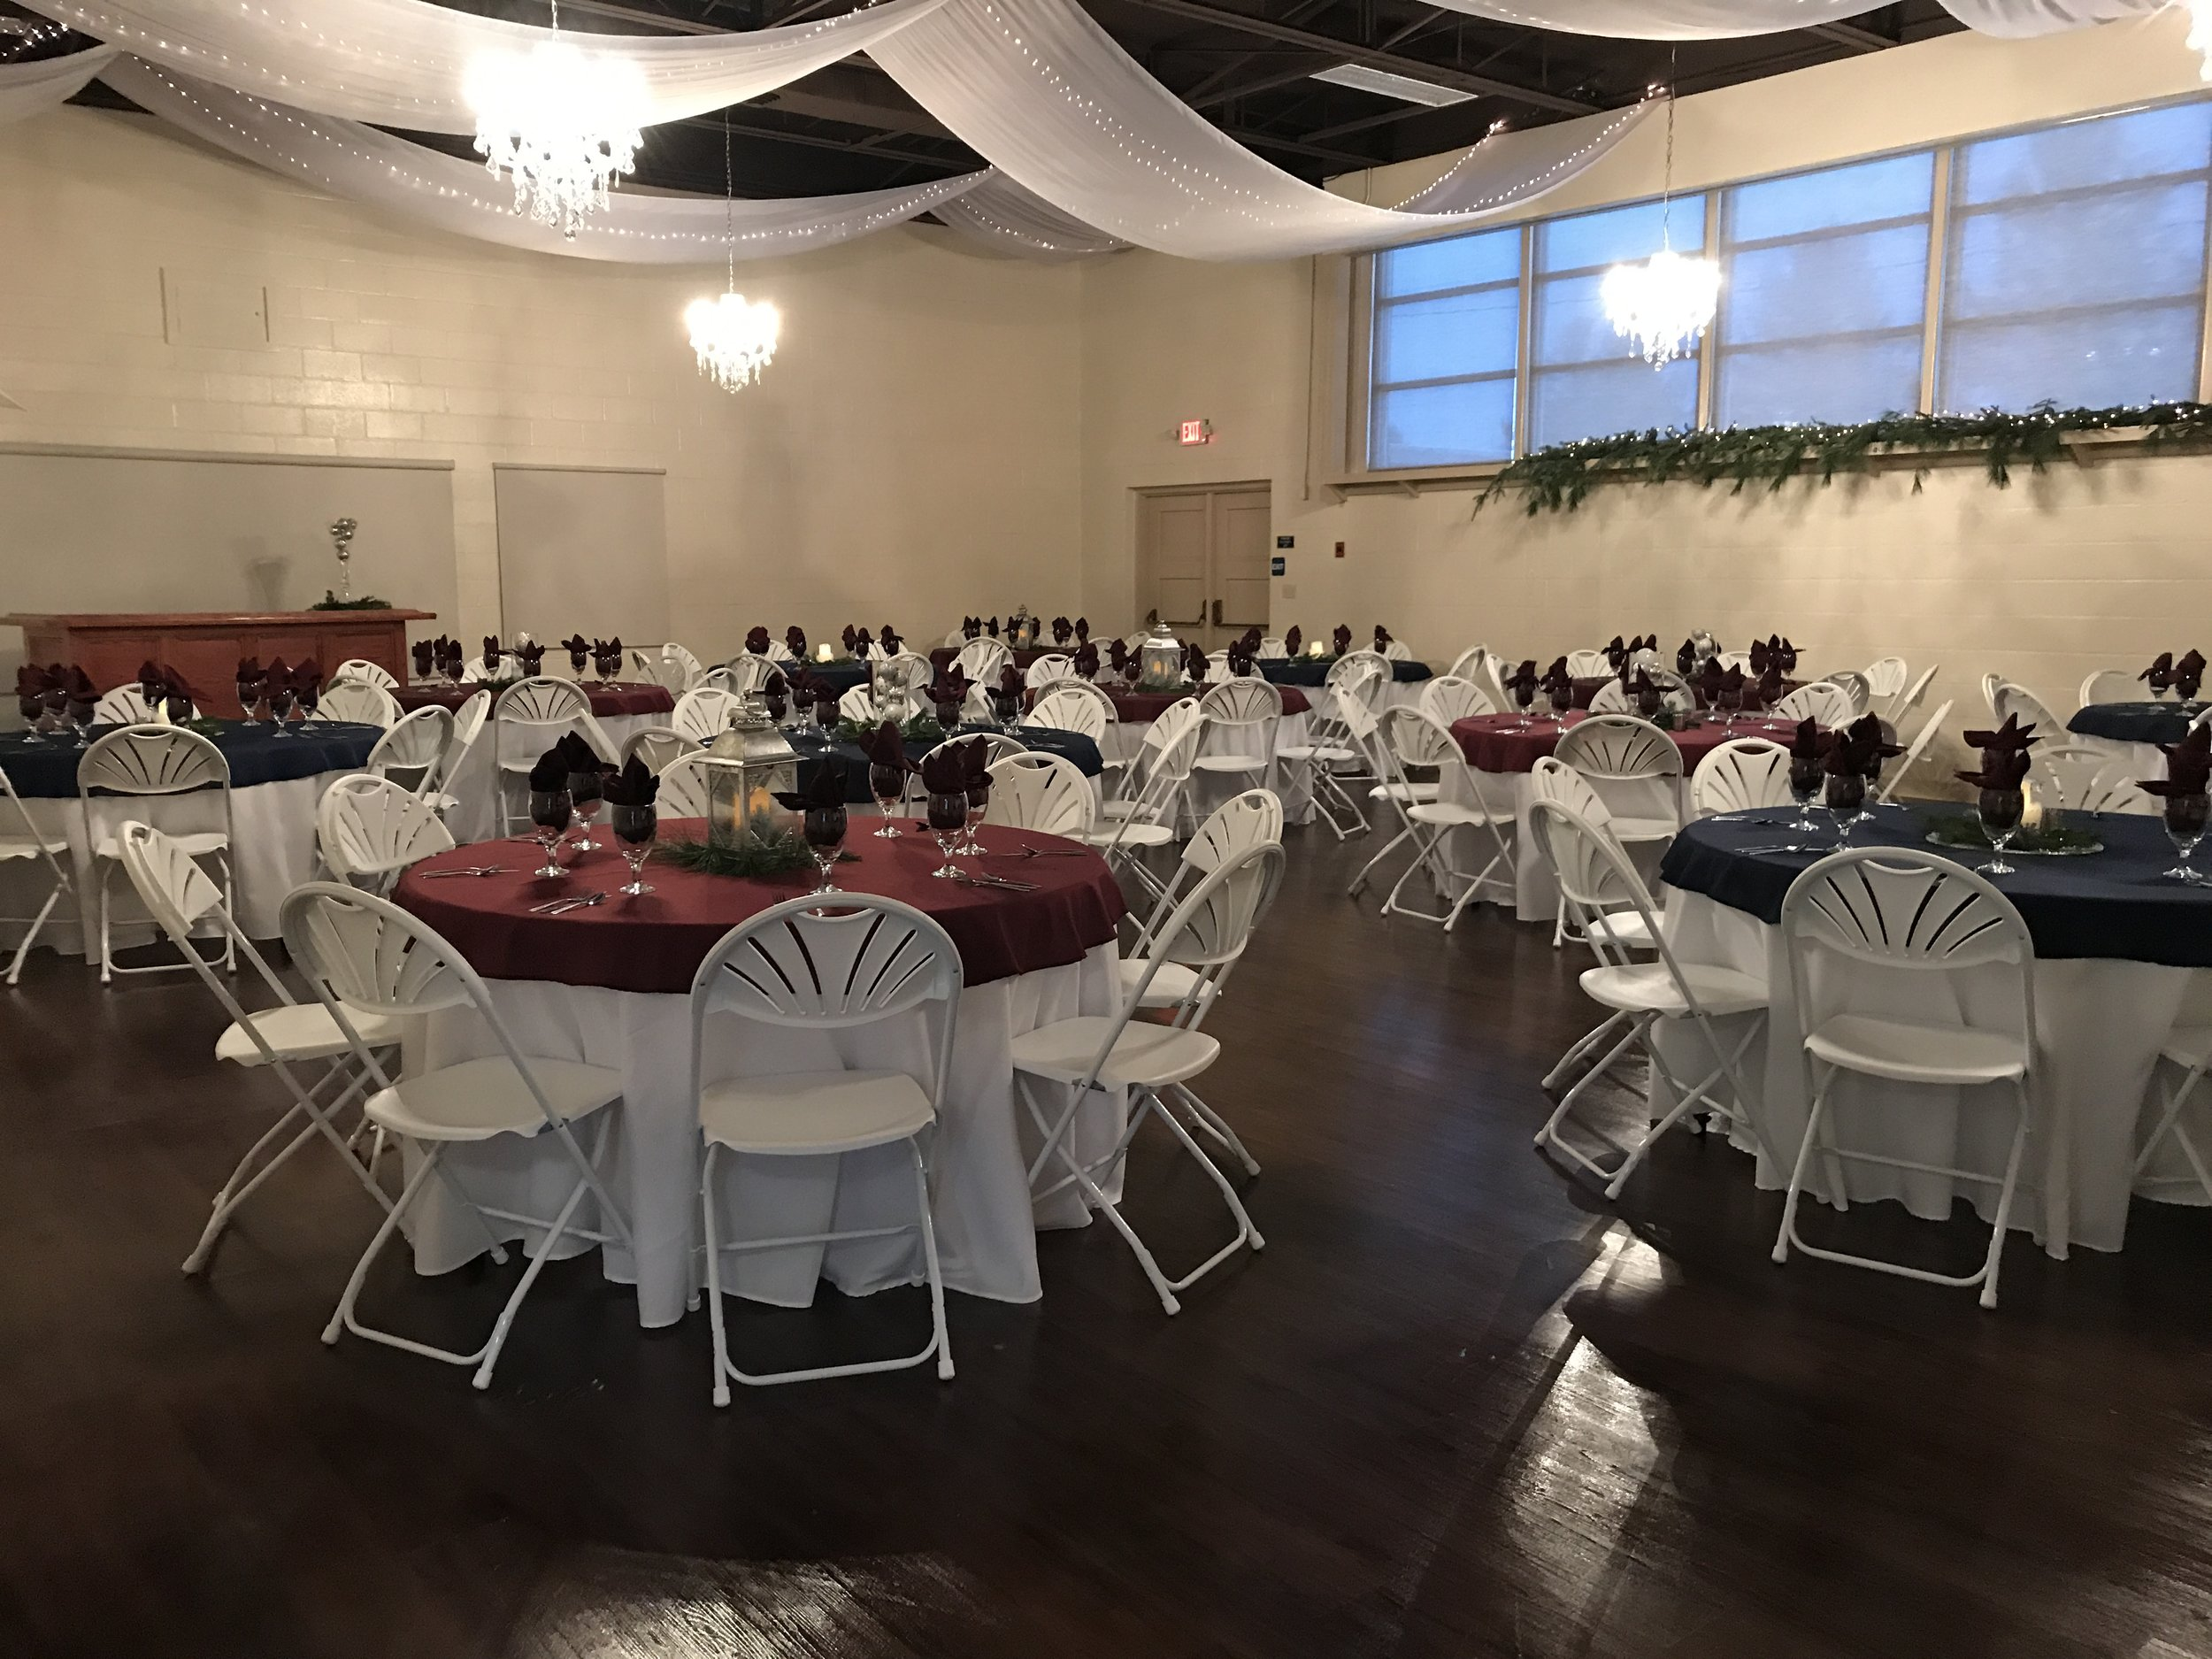 The Auditorium - Our indoor Auditorium room holds 100 guests. It's beautiful chandeliers and refinished stage create the perfect atmosphere to host your intimate affair.  From baby shower to Holiday parties, this climate controlled room is the perfect place to host your event!